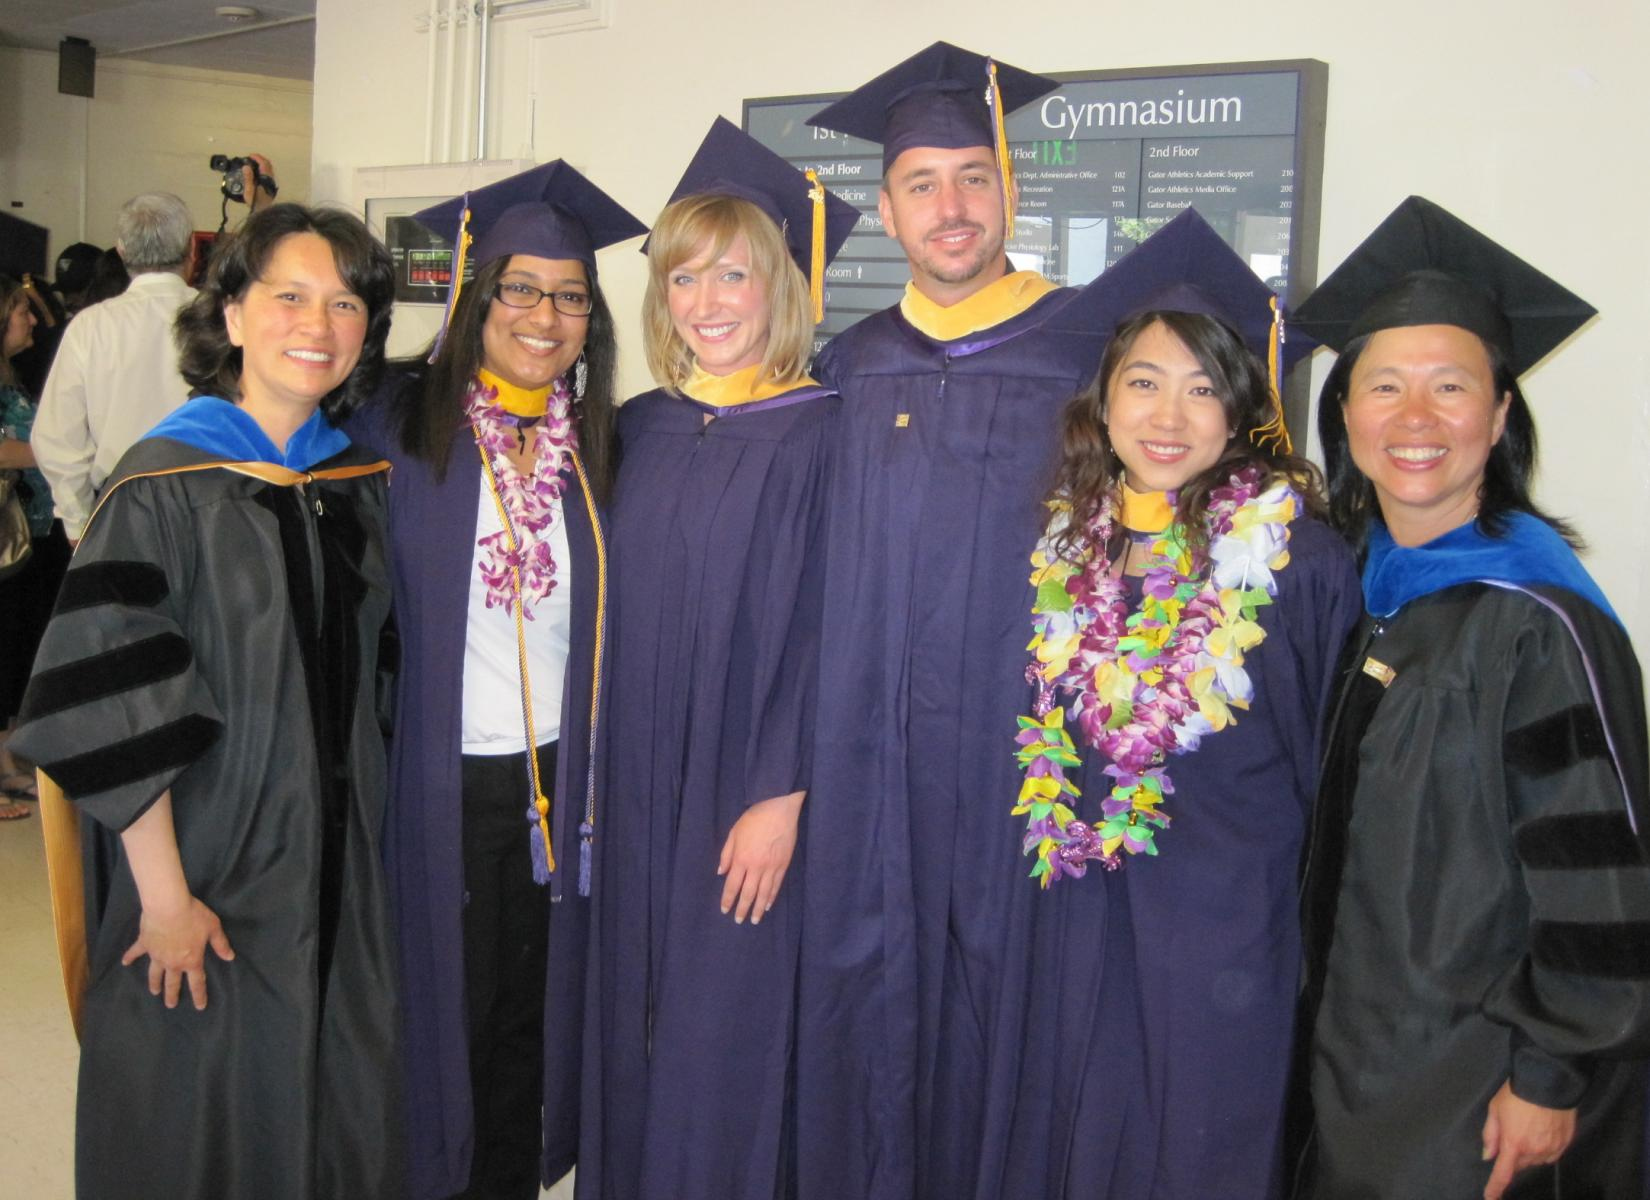 Cohort 1 graduates at Biology Graduation event in May 2012